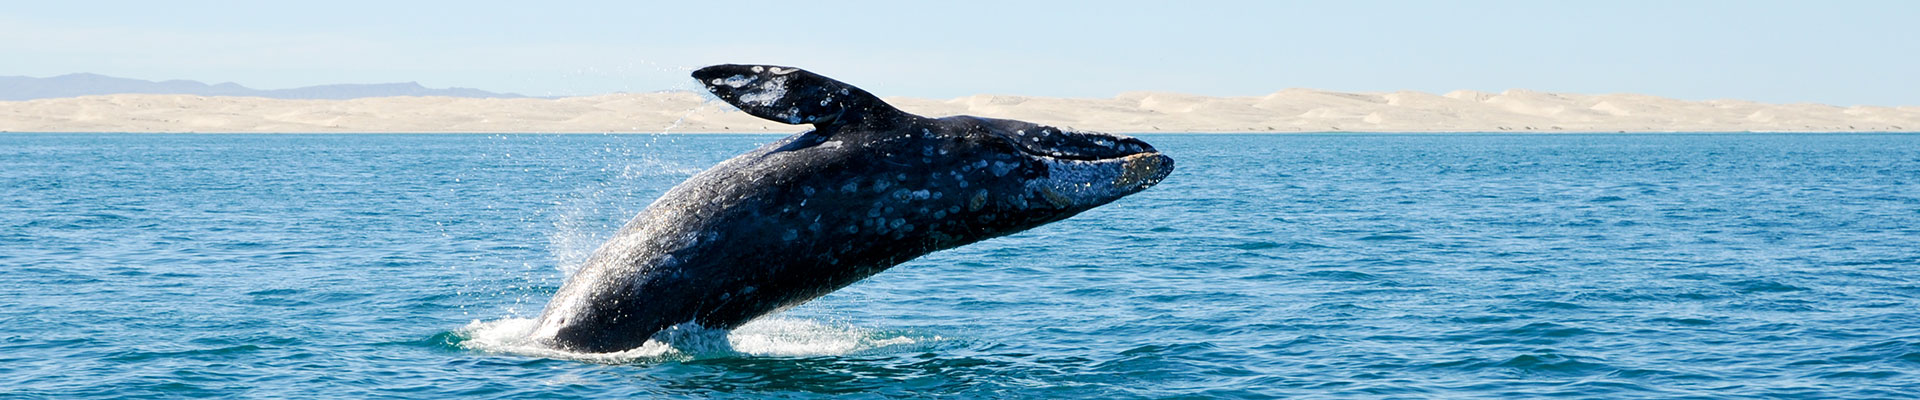 Fantasy RV Tours: 13 Day Baja Whale Watching (13MWWP-031521)